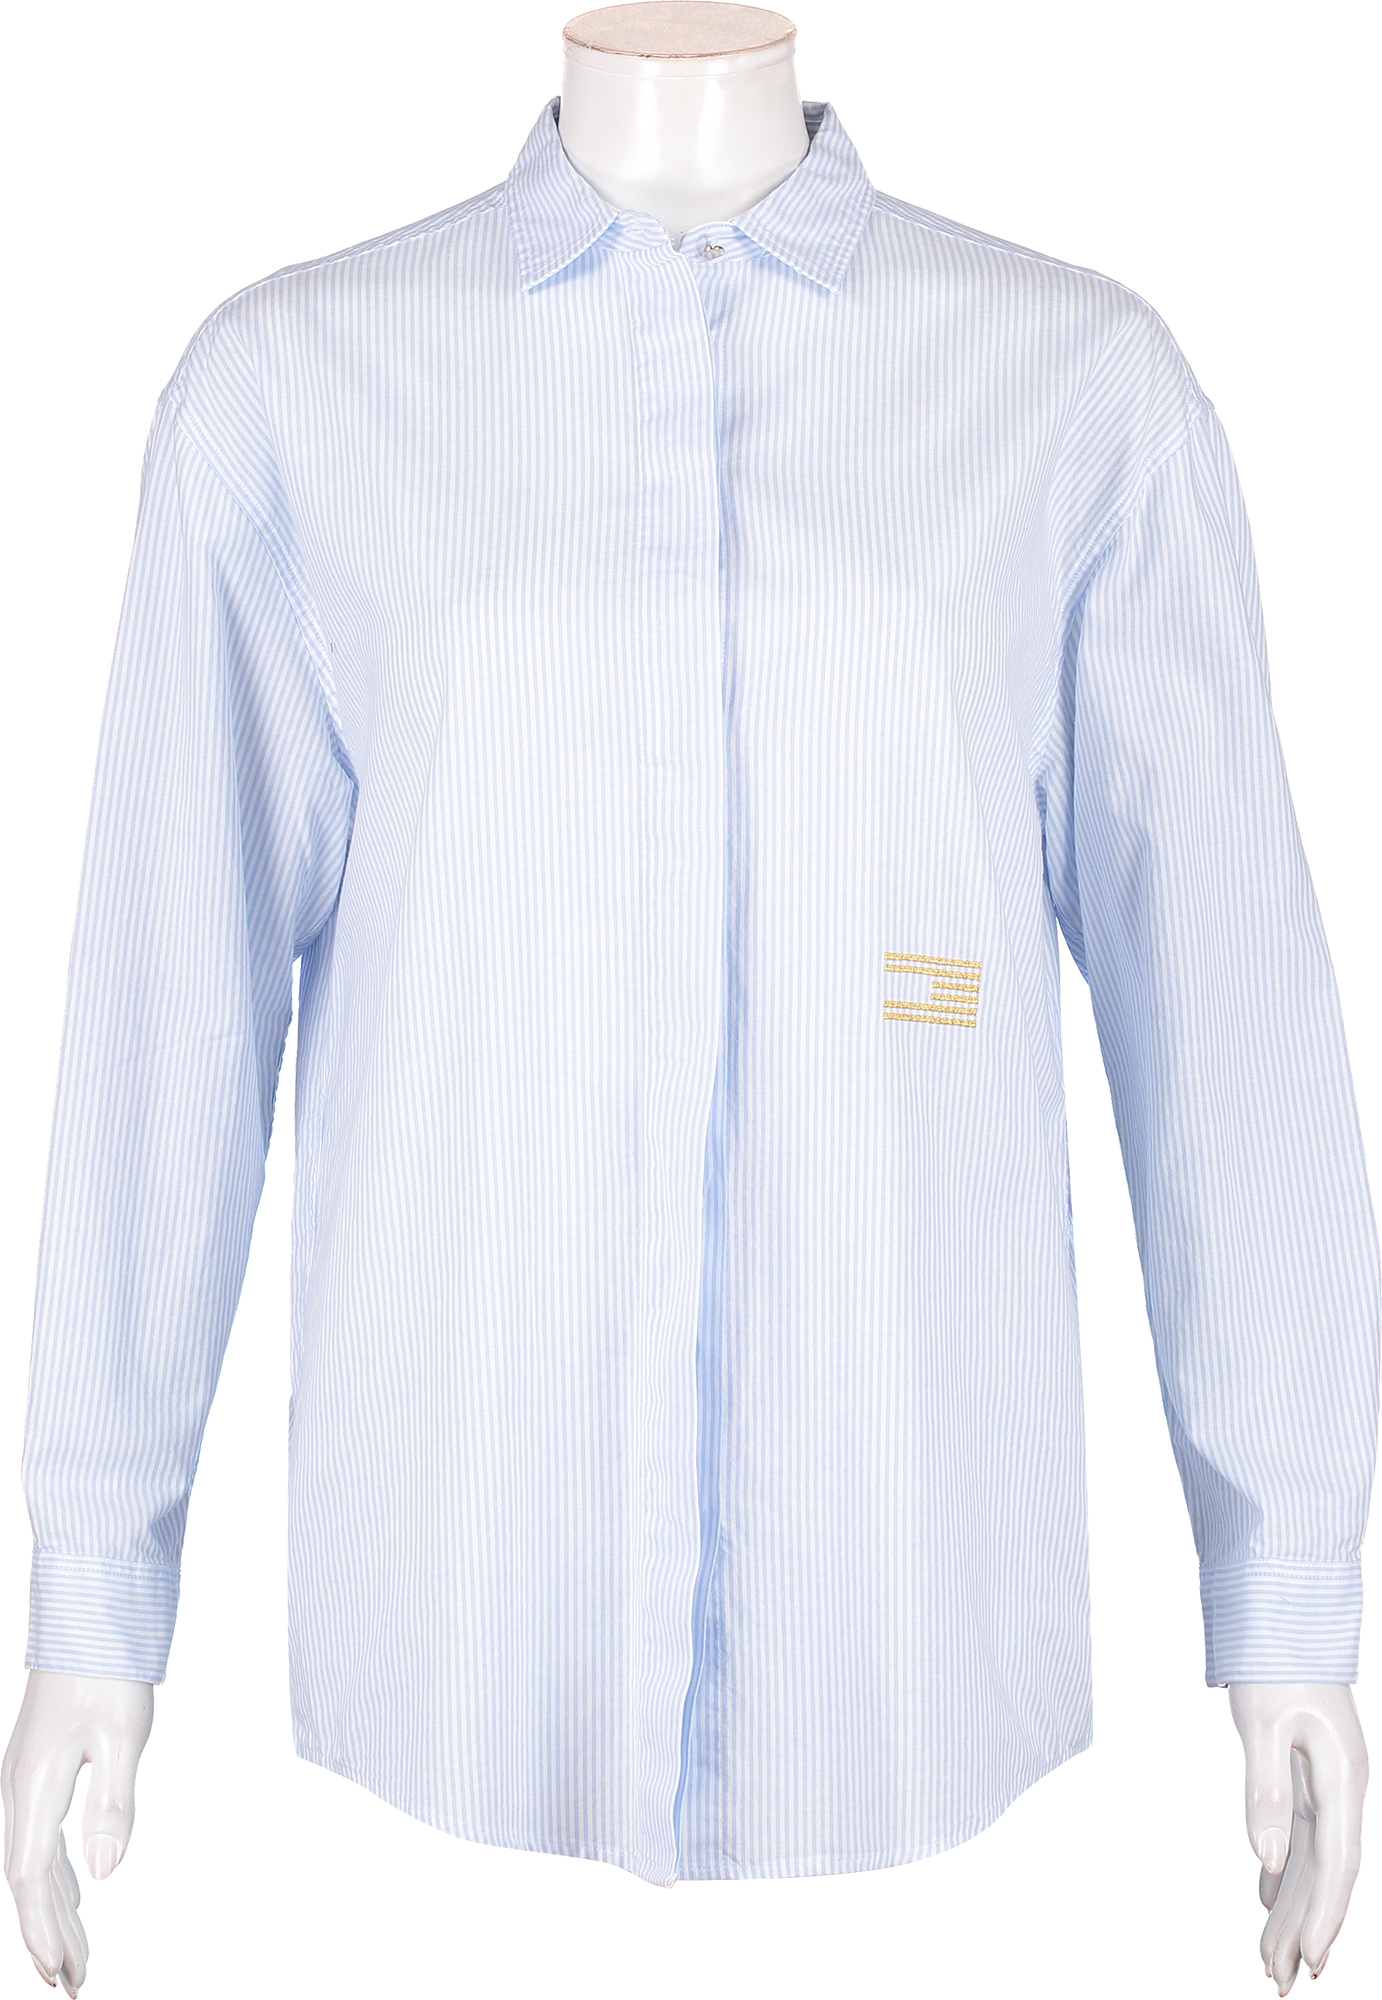 Piet Zoomers Tommy Hilfiger dames blouse